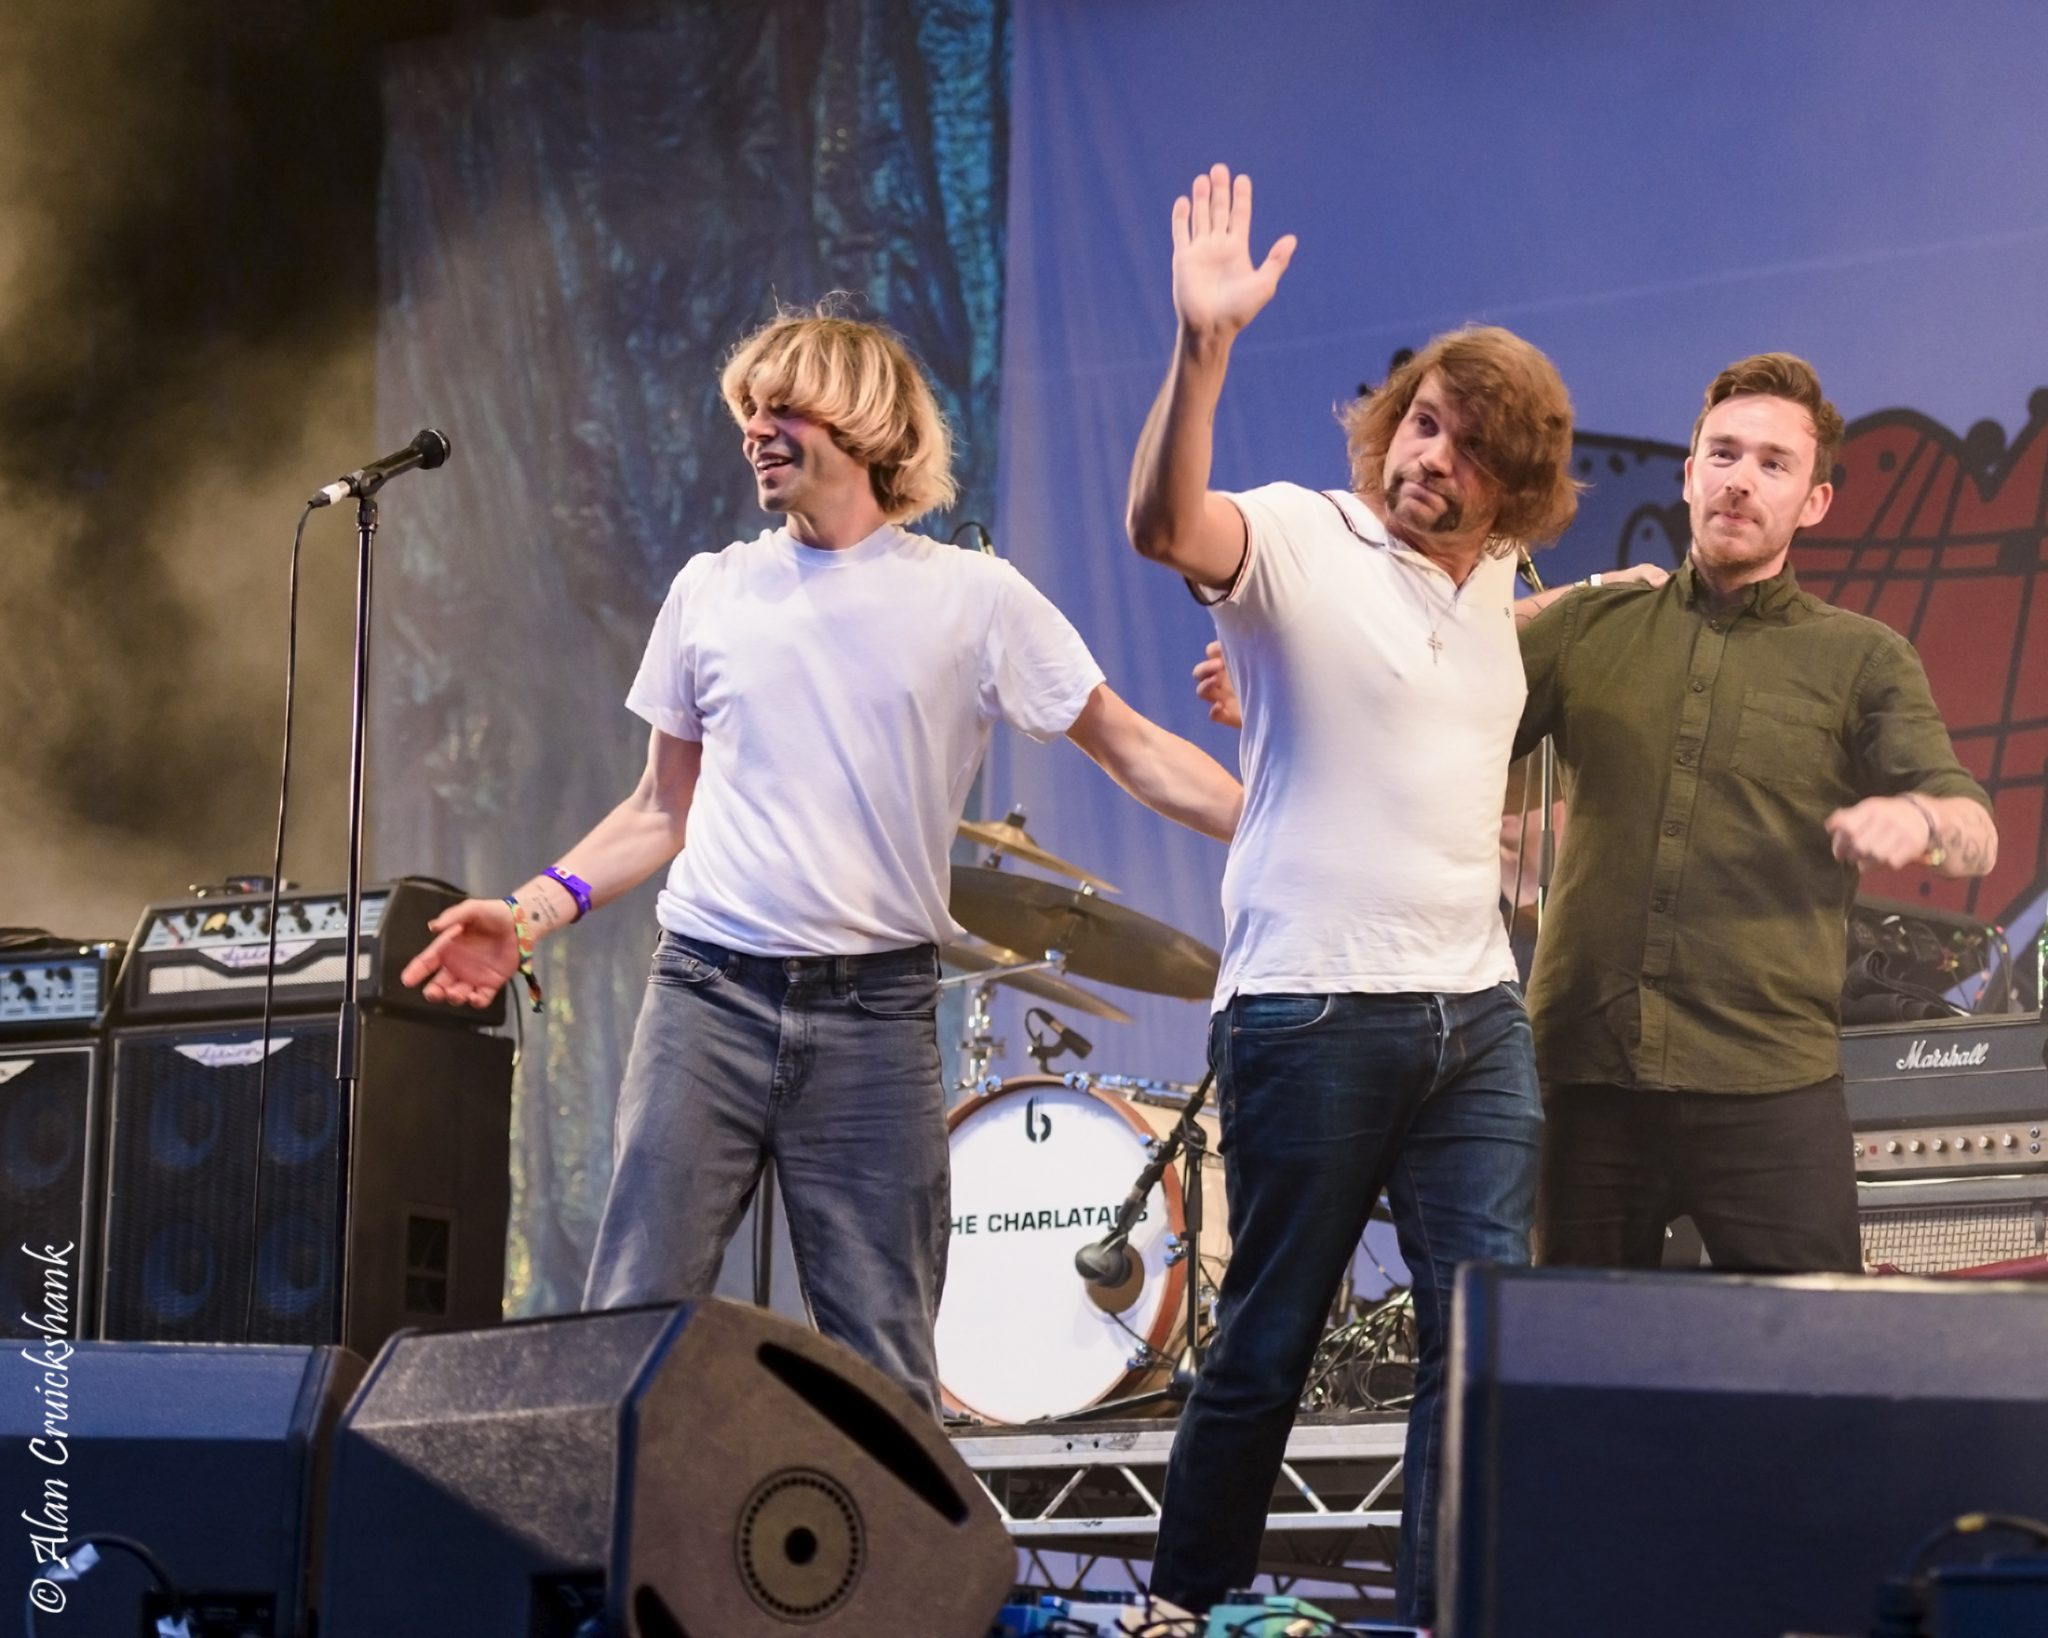 Fxjva - The Charlatans, Friday Belladrum 2018 - IMAGES